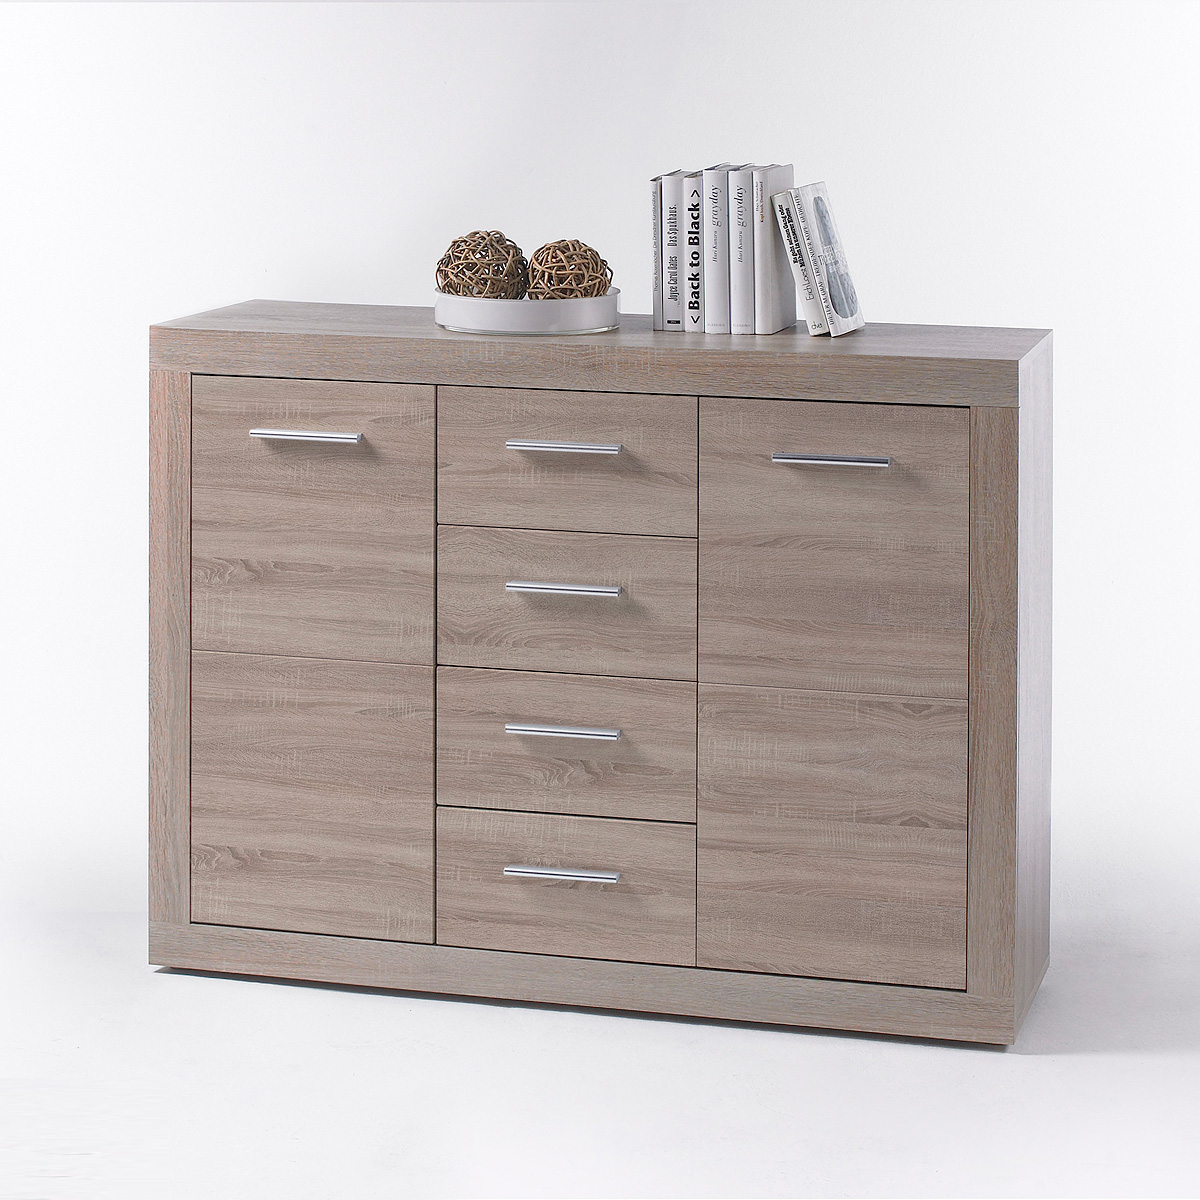 kommode cancan 4 sideboard highboard wei und sonoma eiche dekor ebay. Black Bedroom Furniture Sets. Home Design Ideas